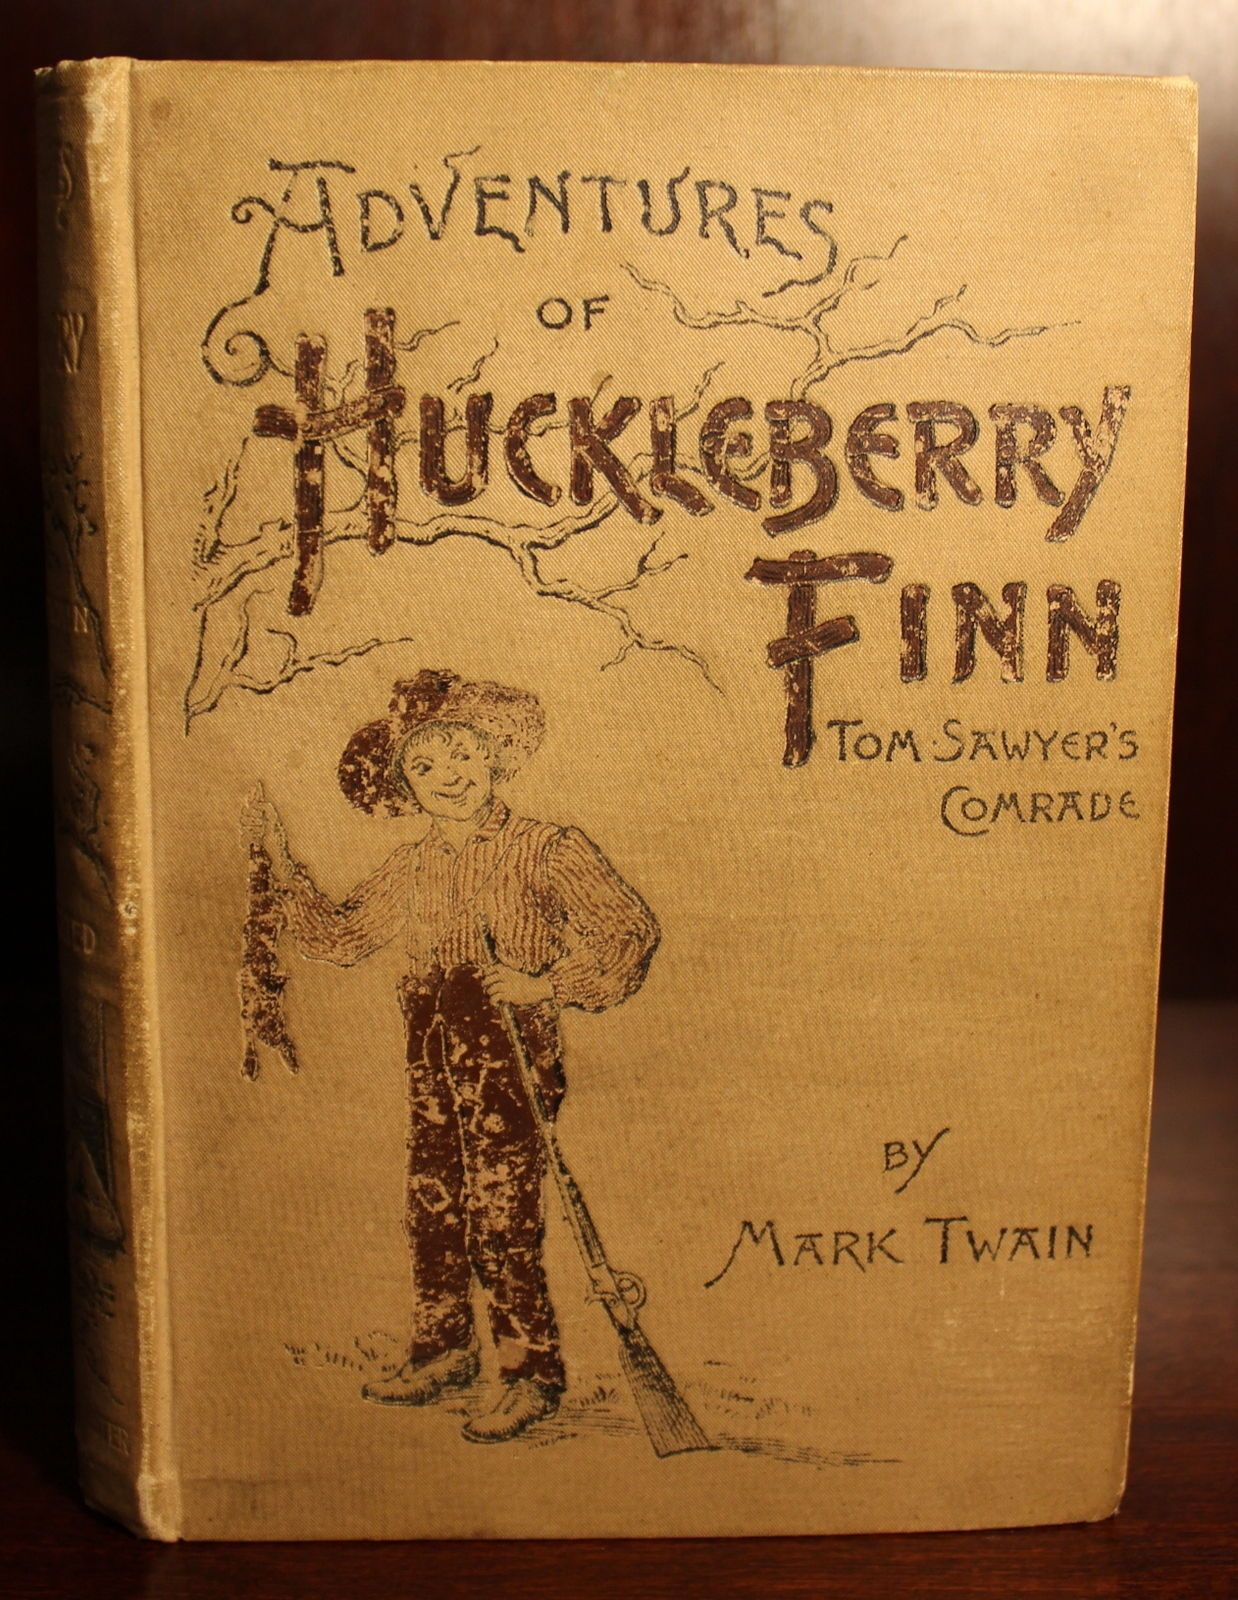 huck and his journey to morality in the novel the adventures of huckleberry finn by mark twain Morality and adventures of huckleberry finn the novel huckleberry finn by mark twain describes the maturing of the morality of an outcast boy, huck.